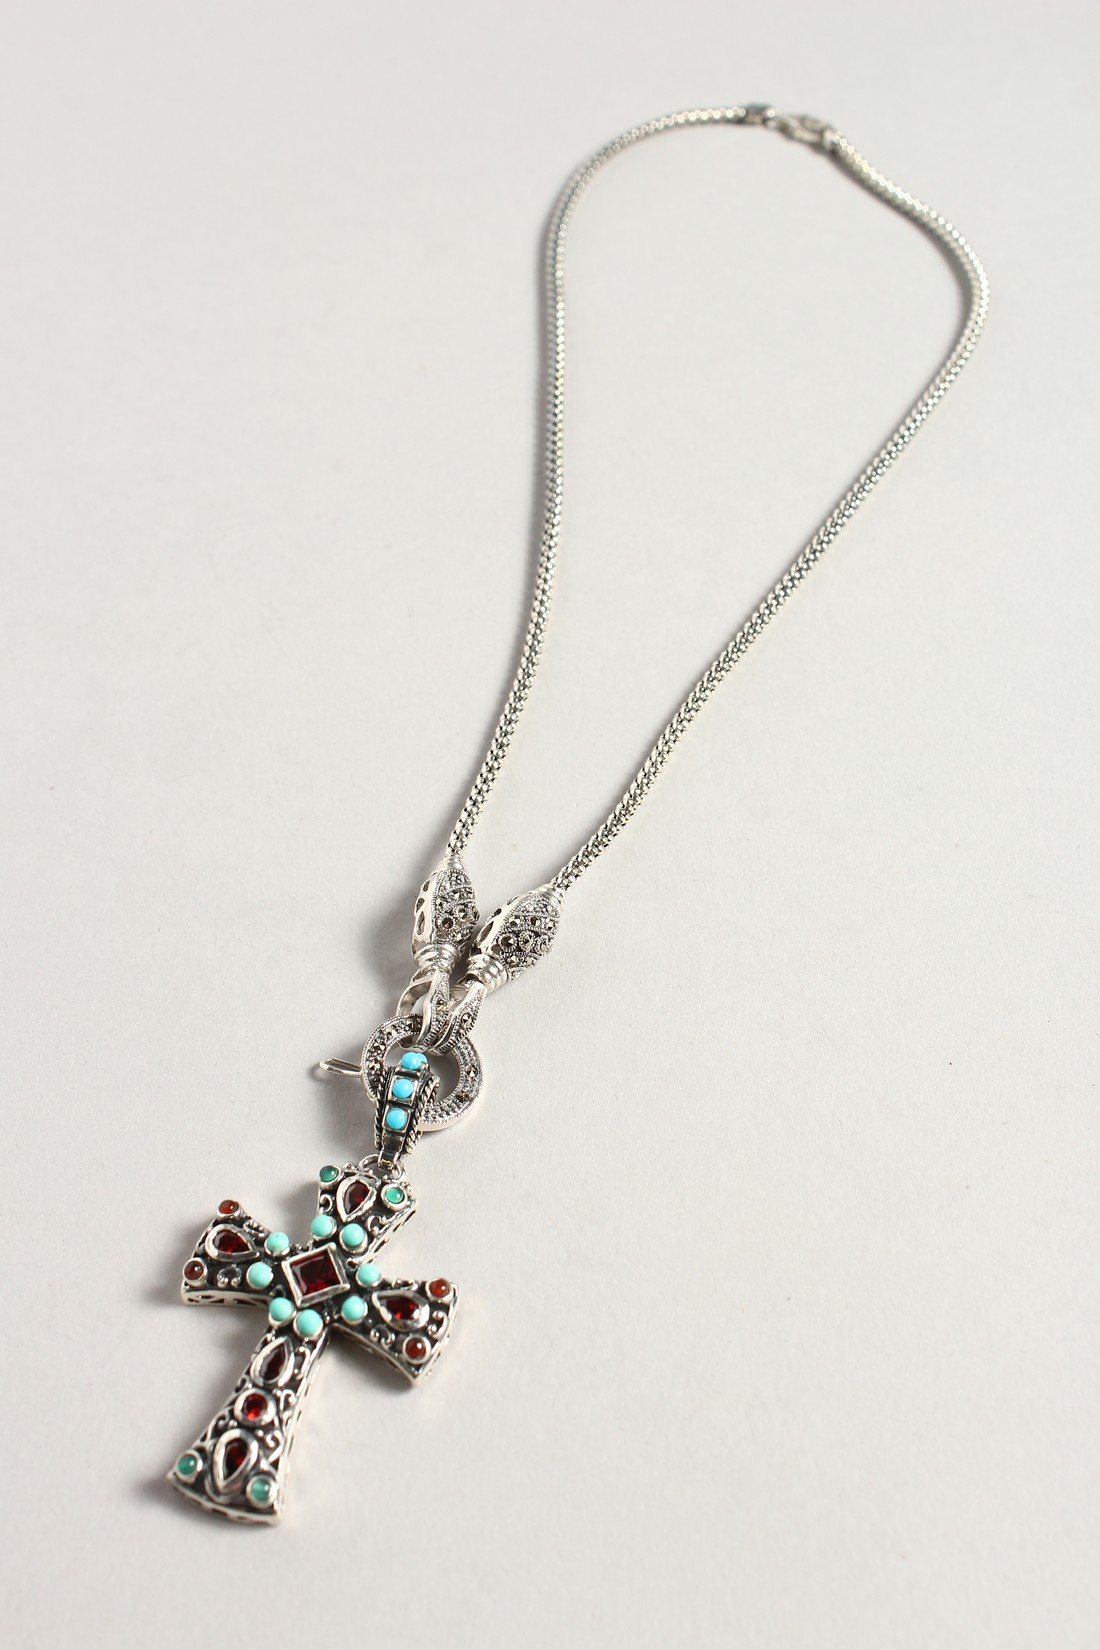 A SILVER TURQUOISE AND GARNET CROSS on a silver chain. - Image 2 of 3